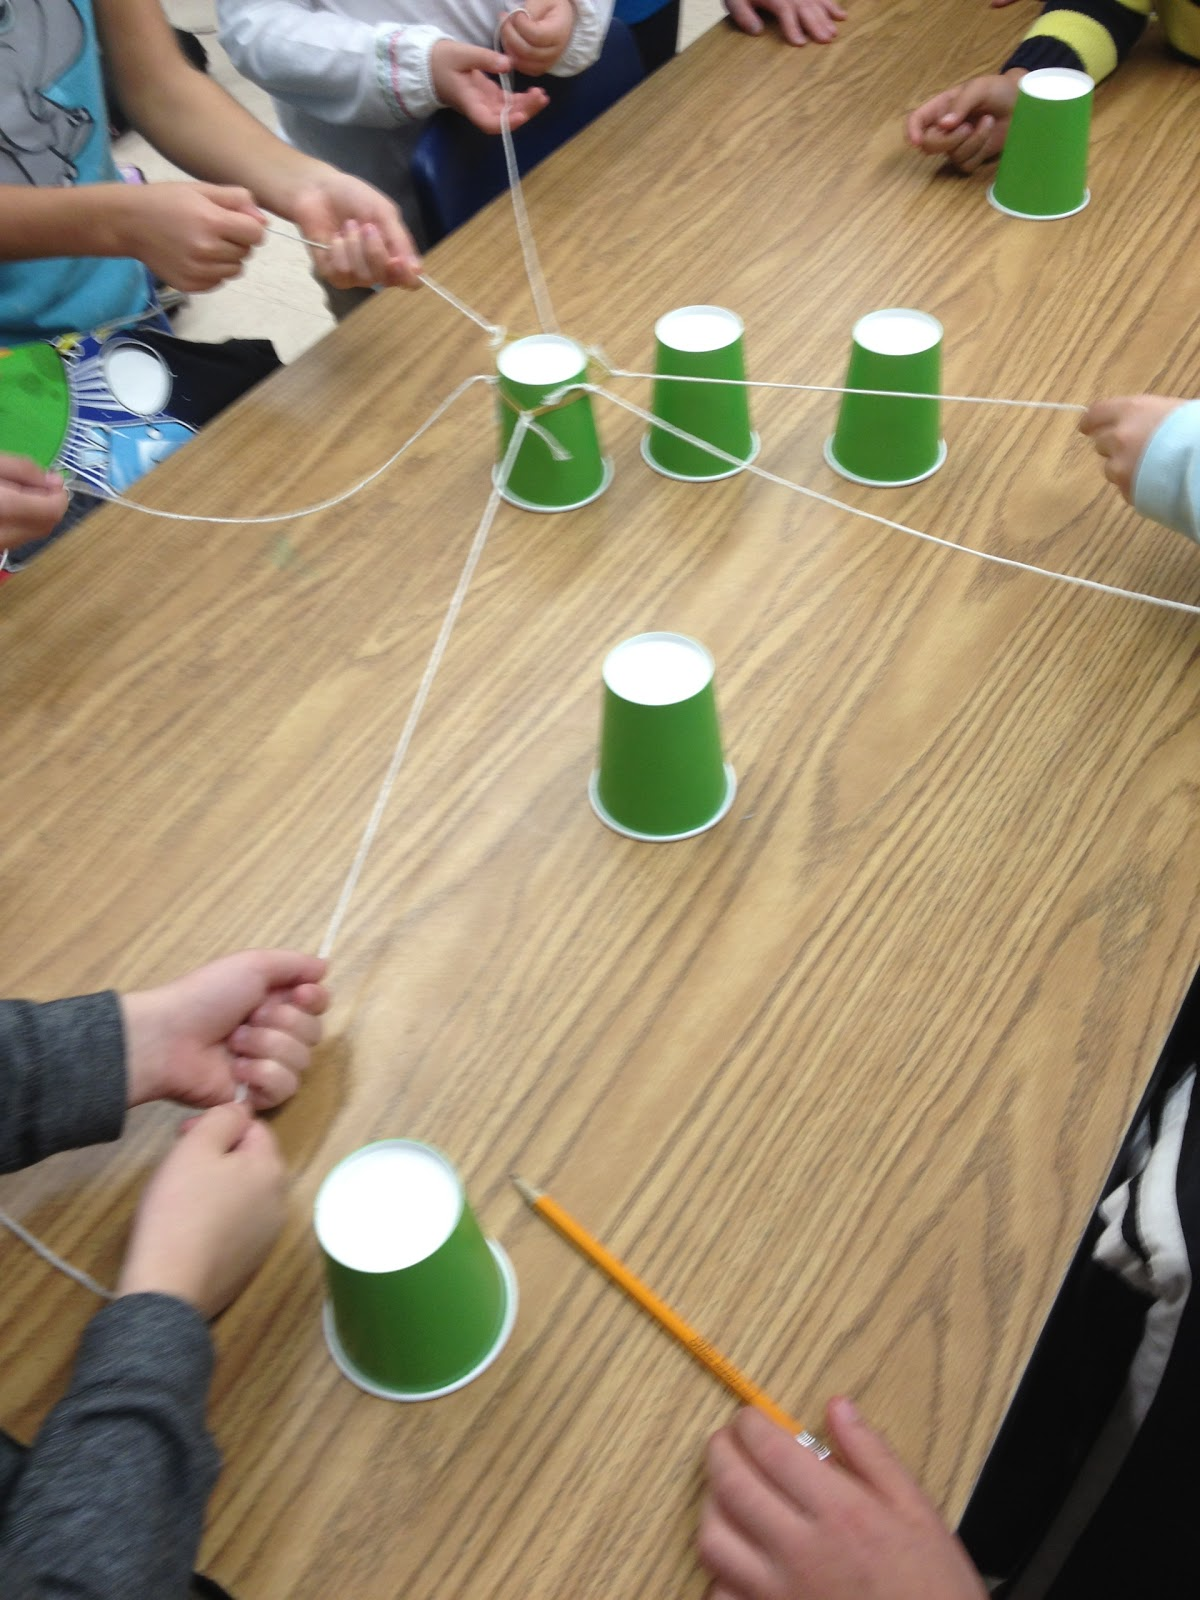 Games on teamwork for adults